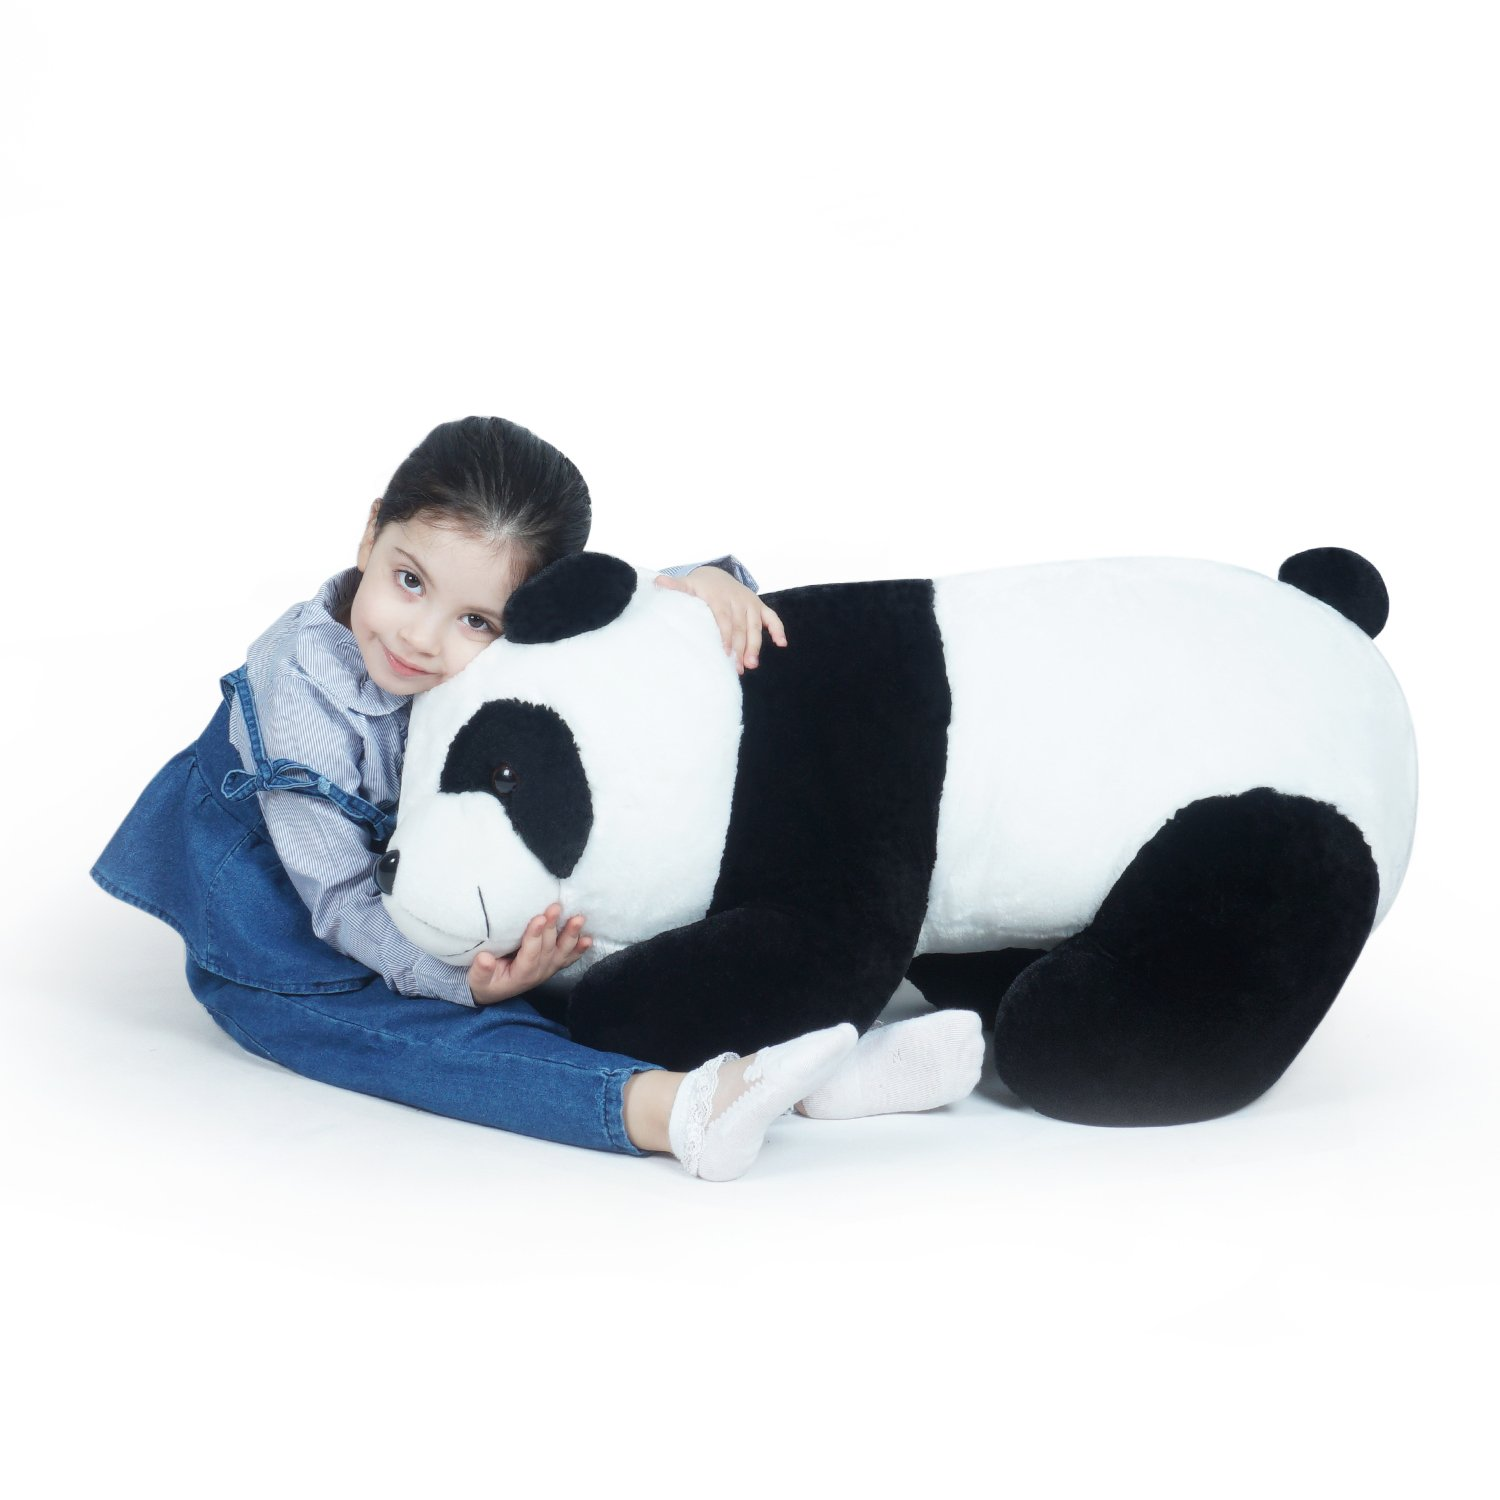 LOVOUS Super Soft Giant Stuffed Animal Panda Bear Plush Toy Gifts Kids 31